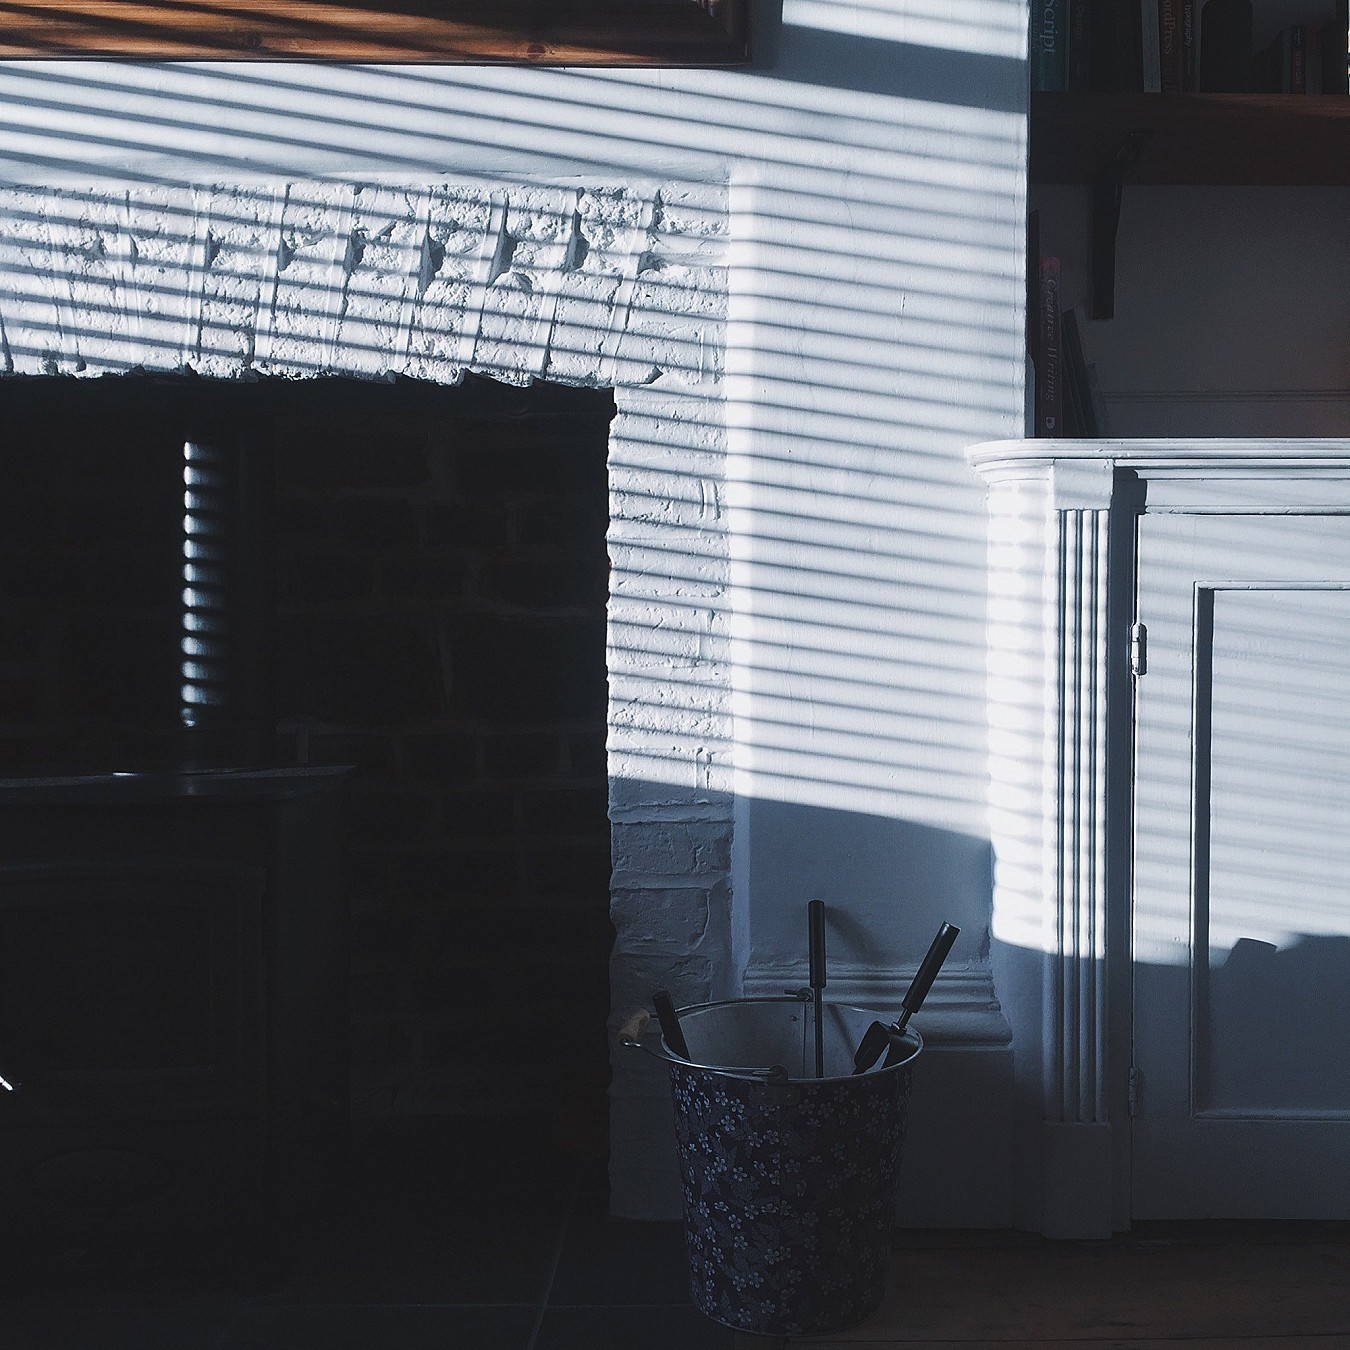 A fireplace with light streaming in through blinds.